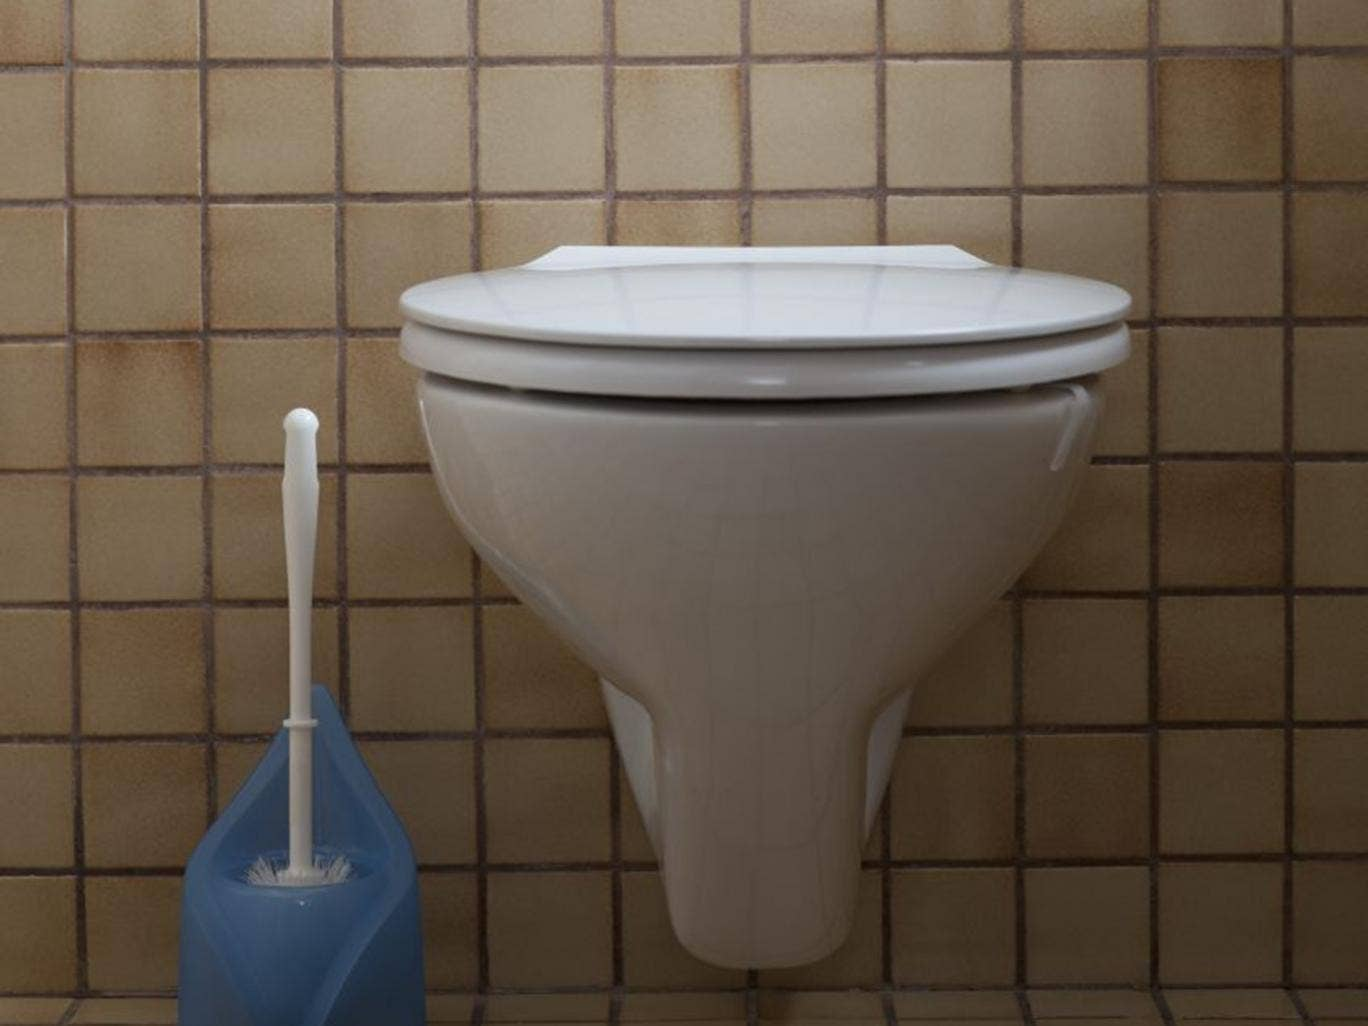 Waterless, off-grid and able to charge your phone: Inside the toilet ...